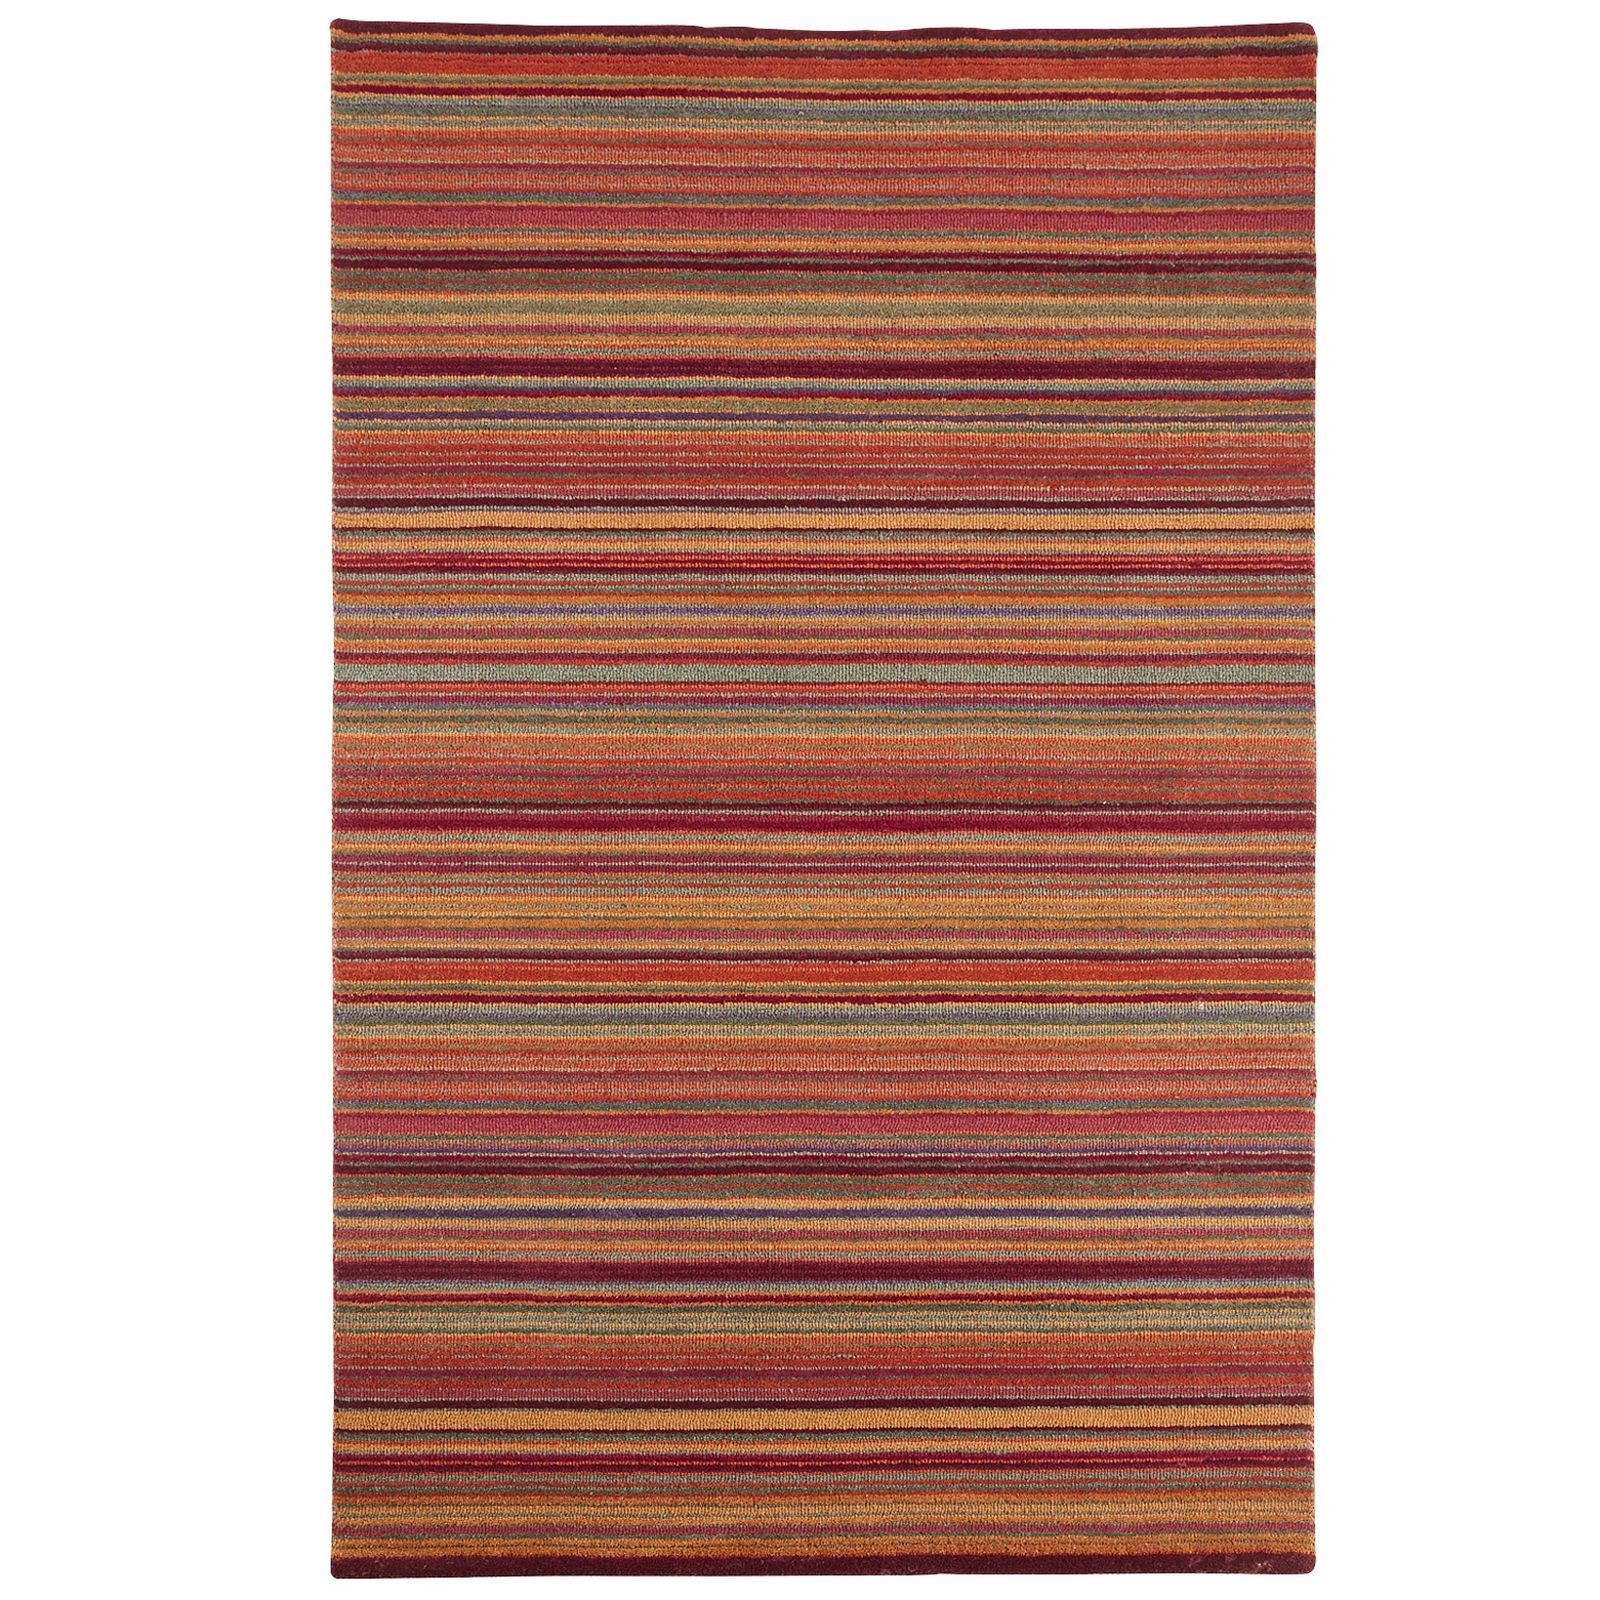 Naturally Durable Wool And Hand Tufting Make Our Taft Rug An Excellent Choice For High